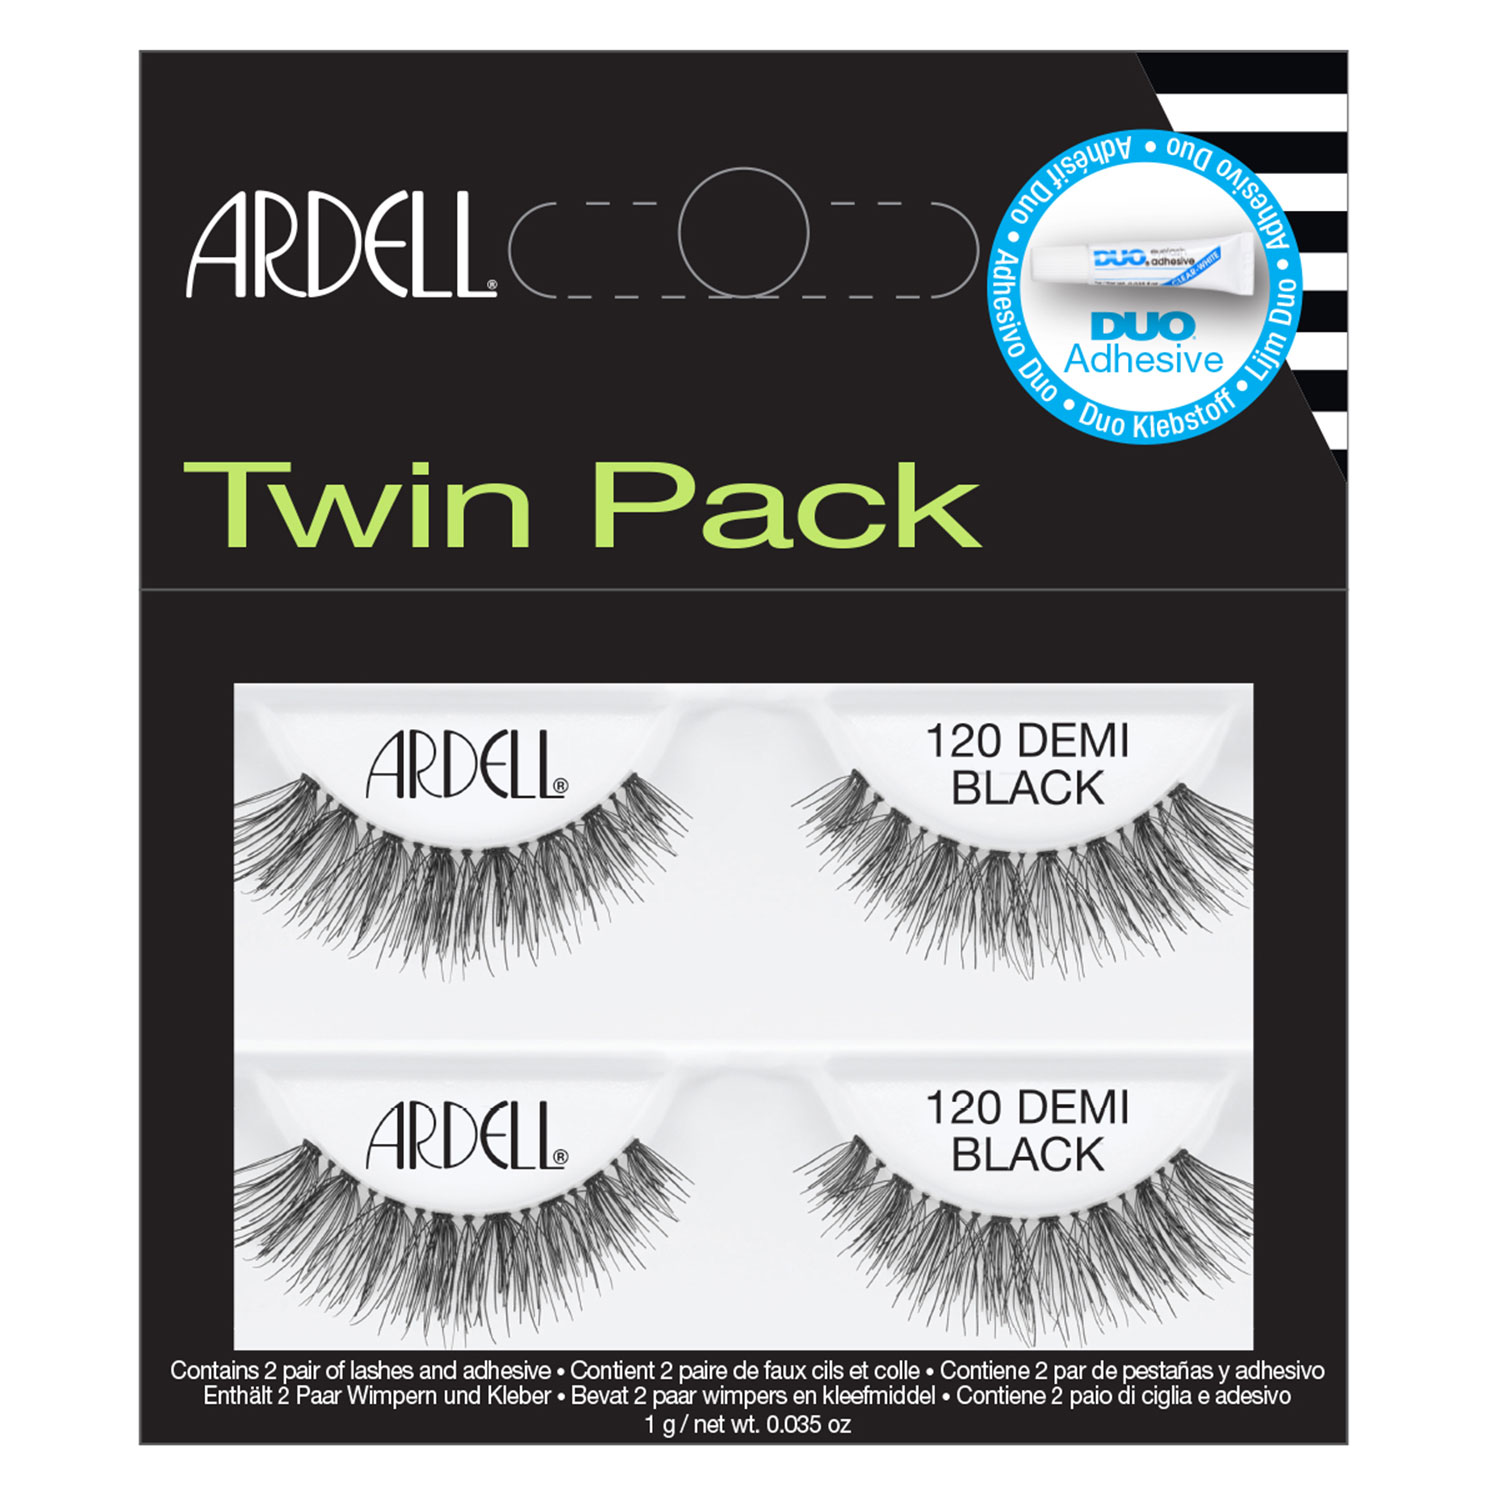 Ardell False Lashes - Twin Pack Lashes 120